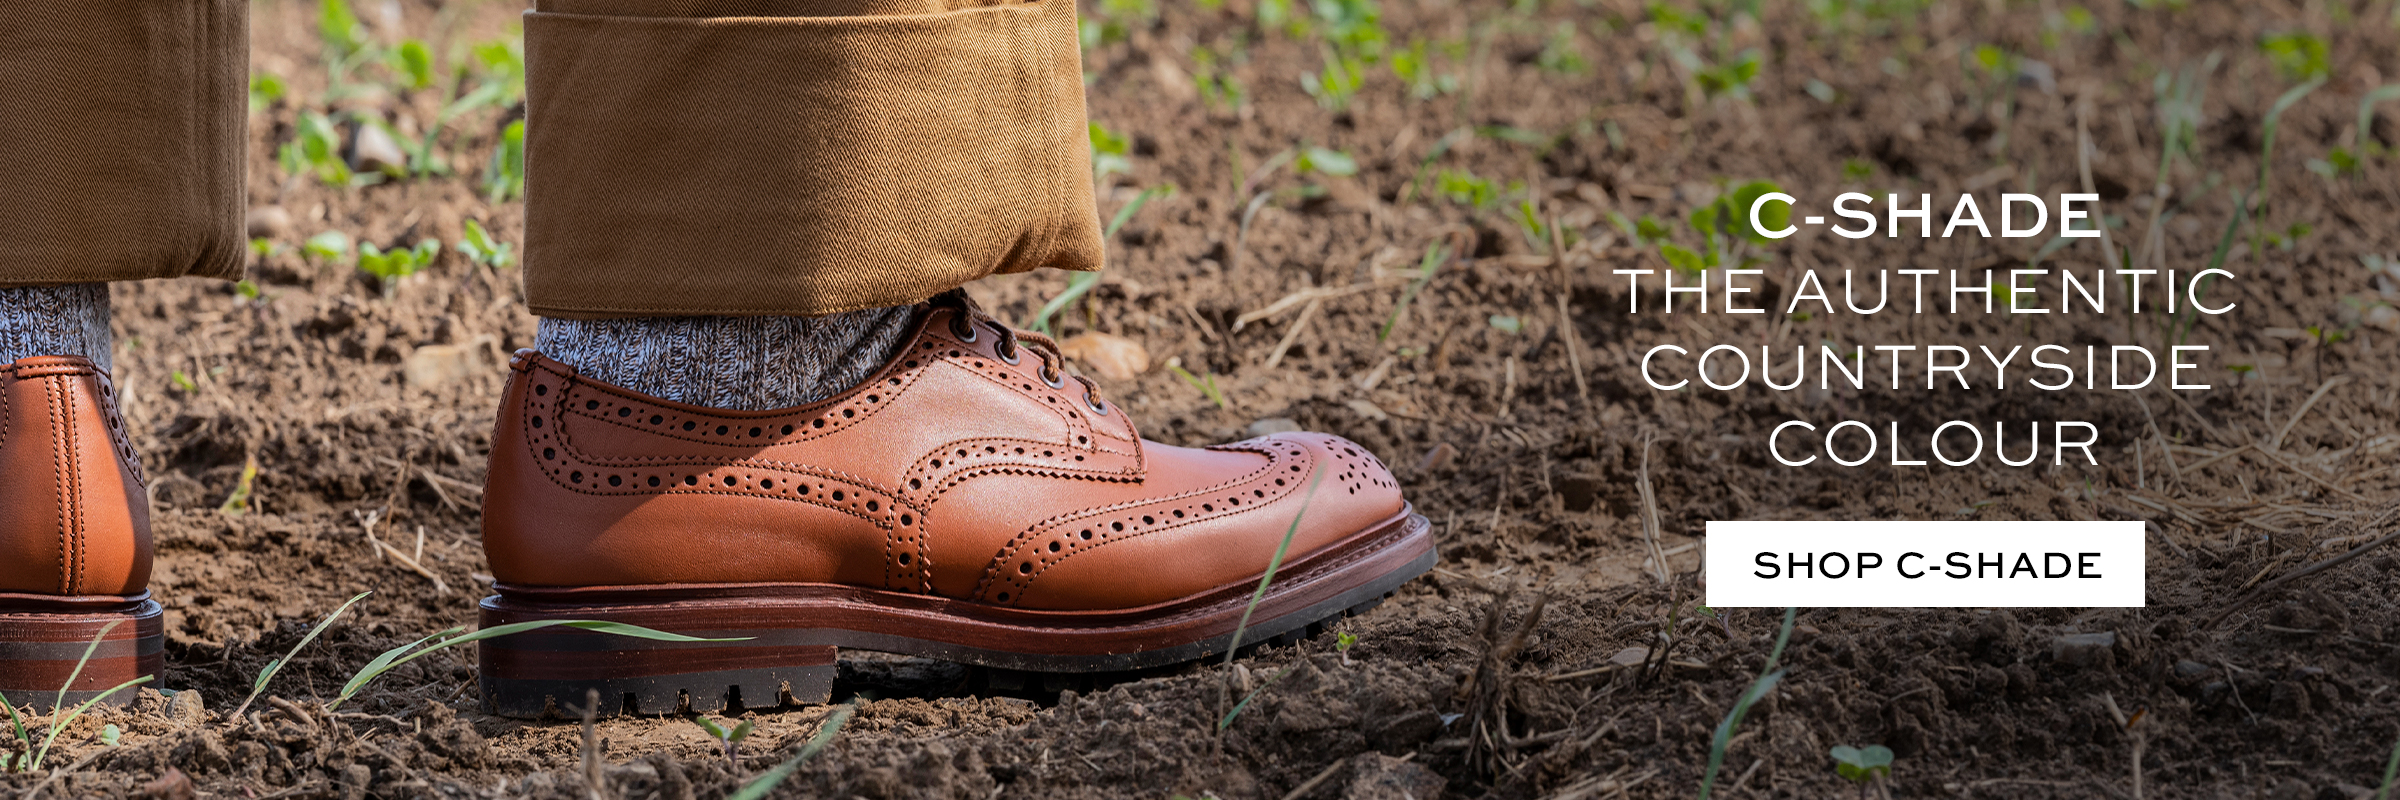 C-shade Stow Country Shoe